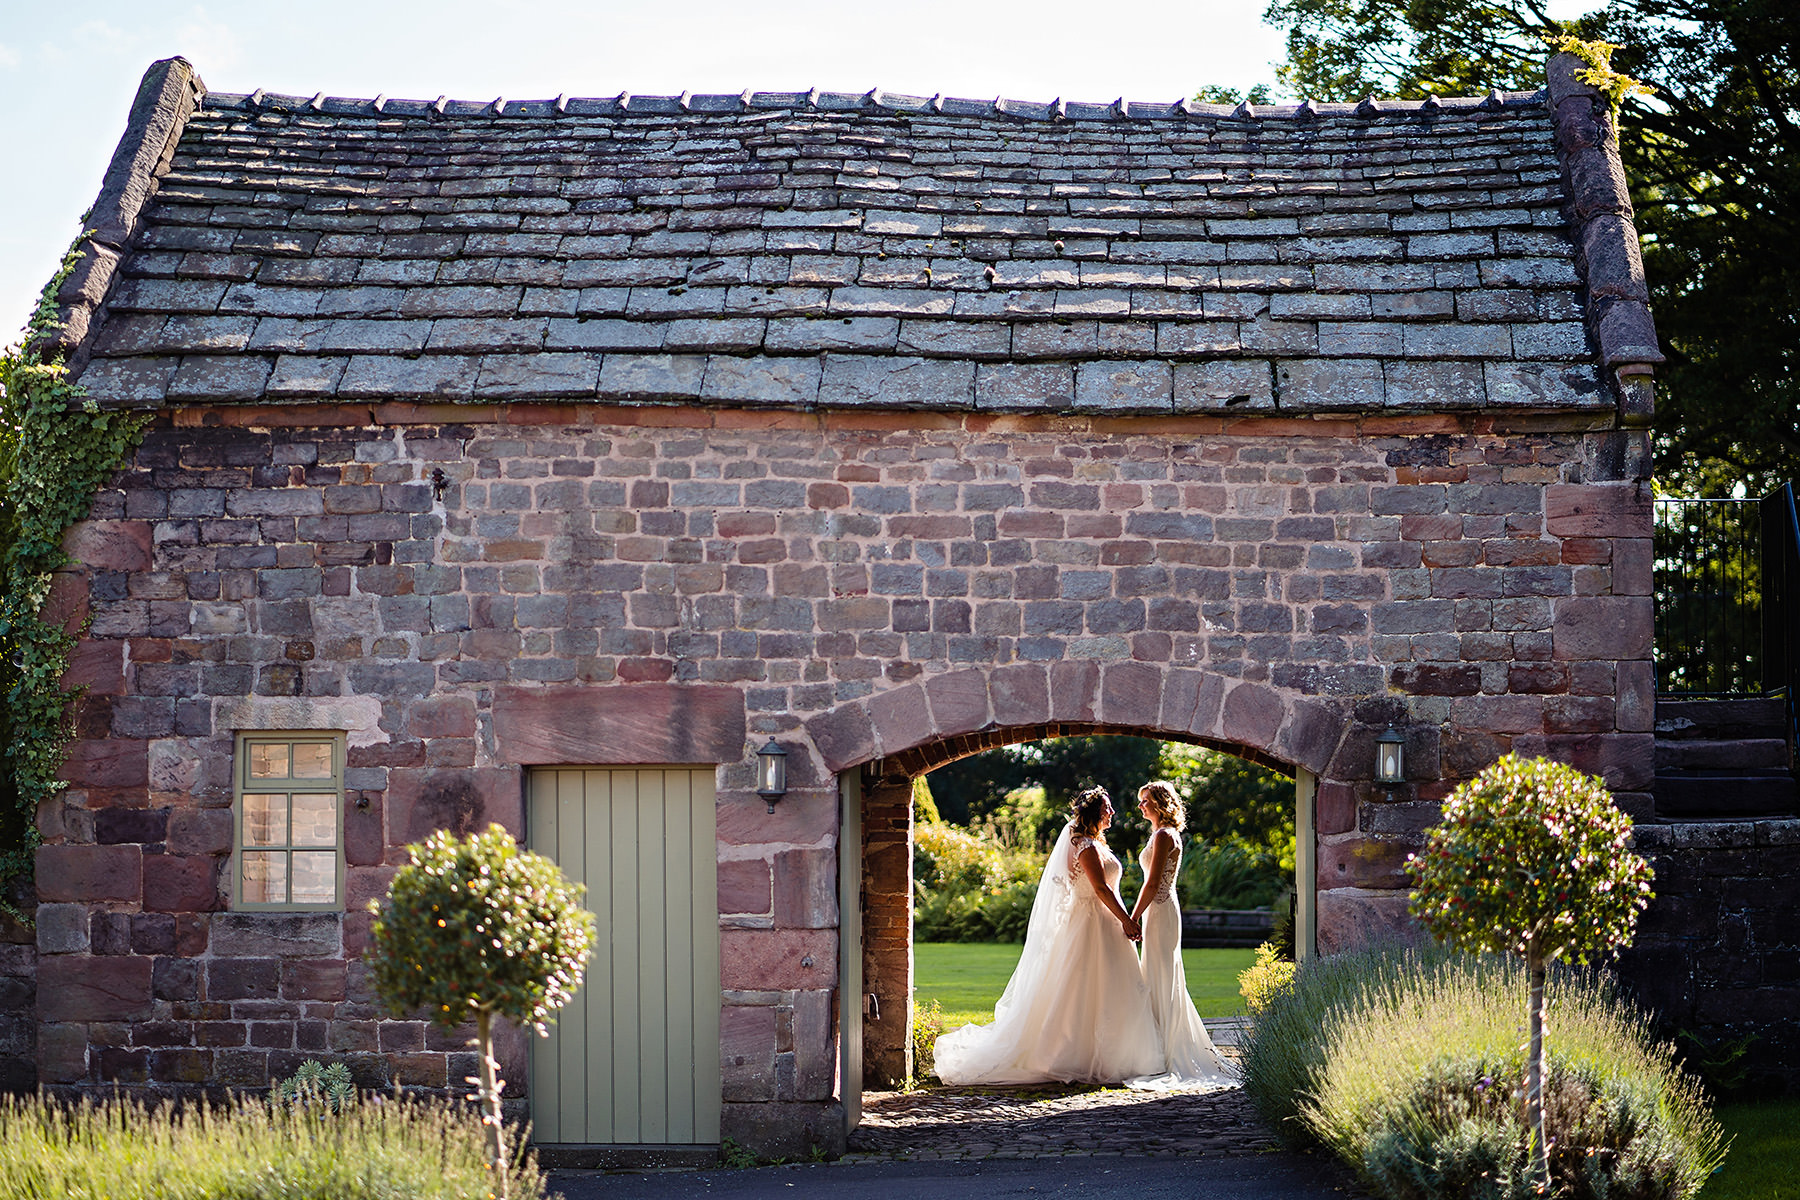 The ashes Coach house with two brides in the arch